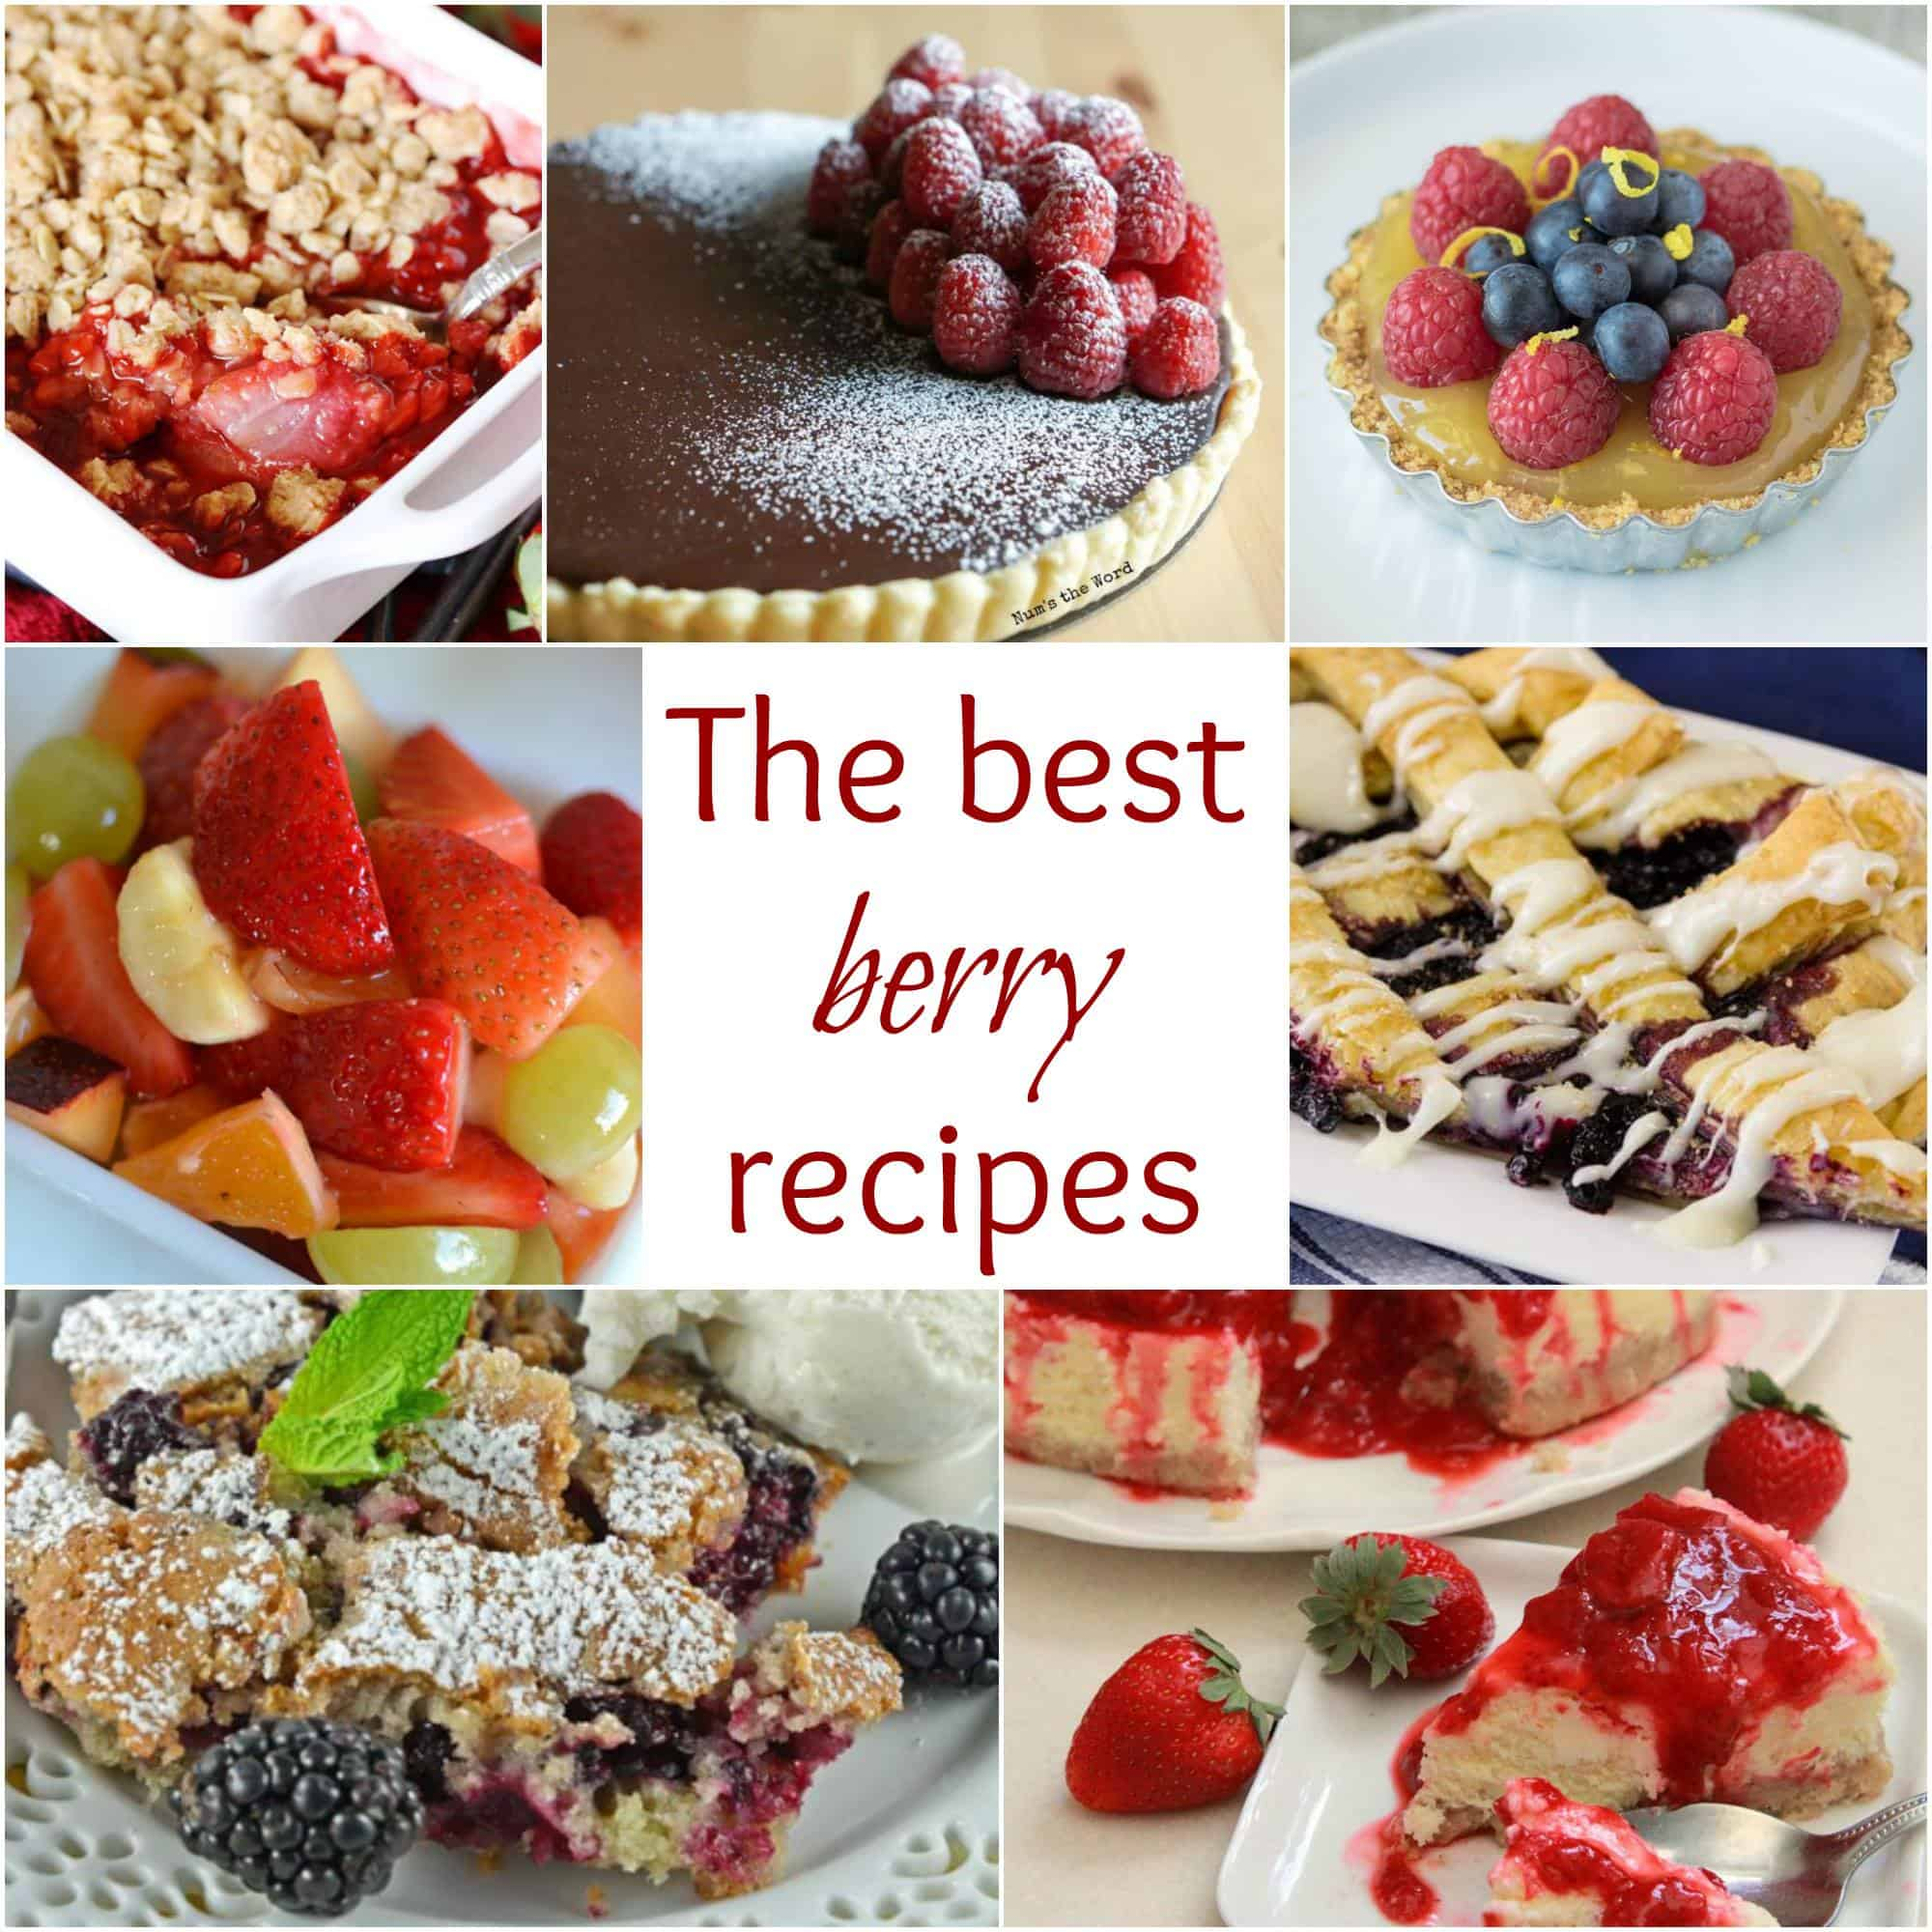 The Best Berry Recipes